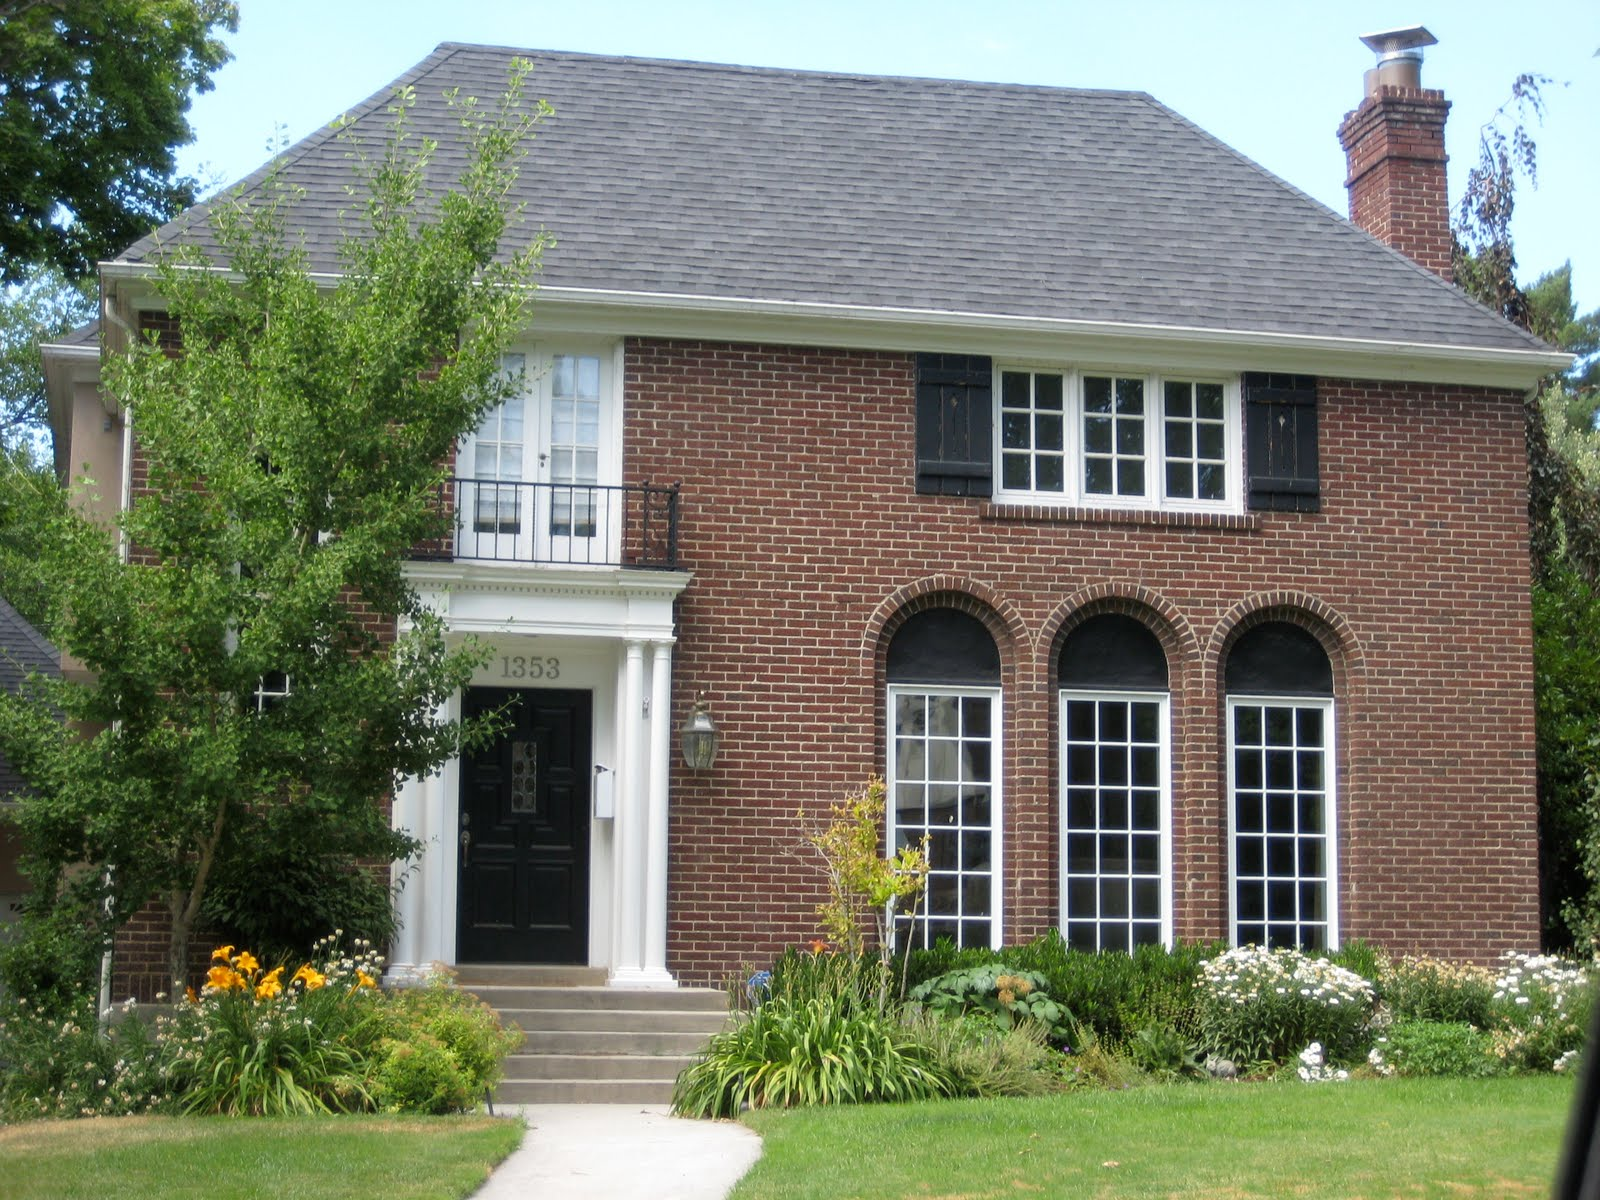 What Are The Different Styles Of Homes Very Fine House Slc Style Brick Houses